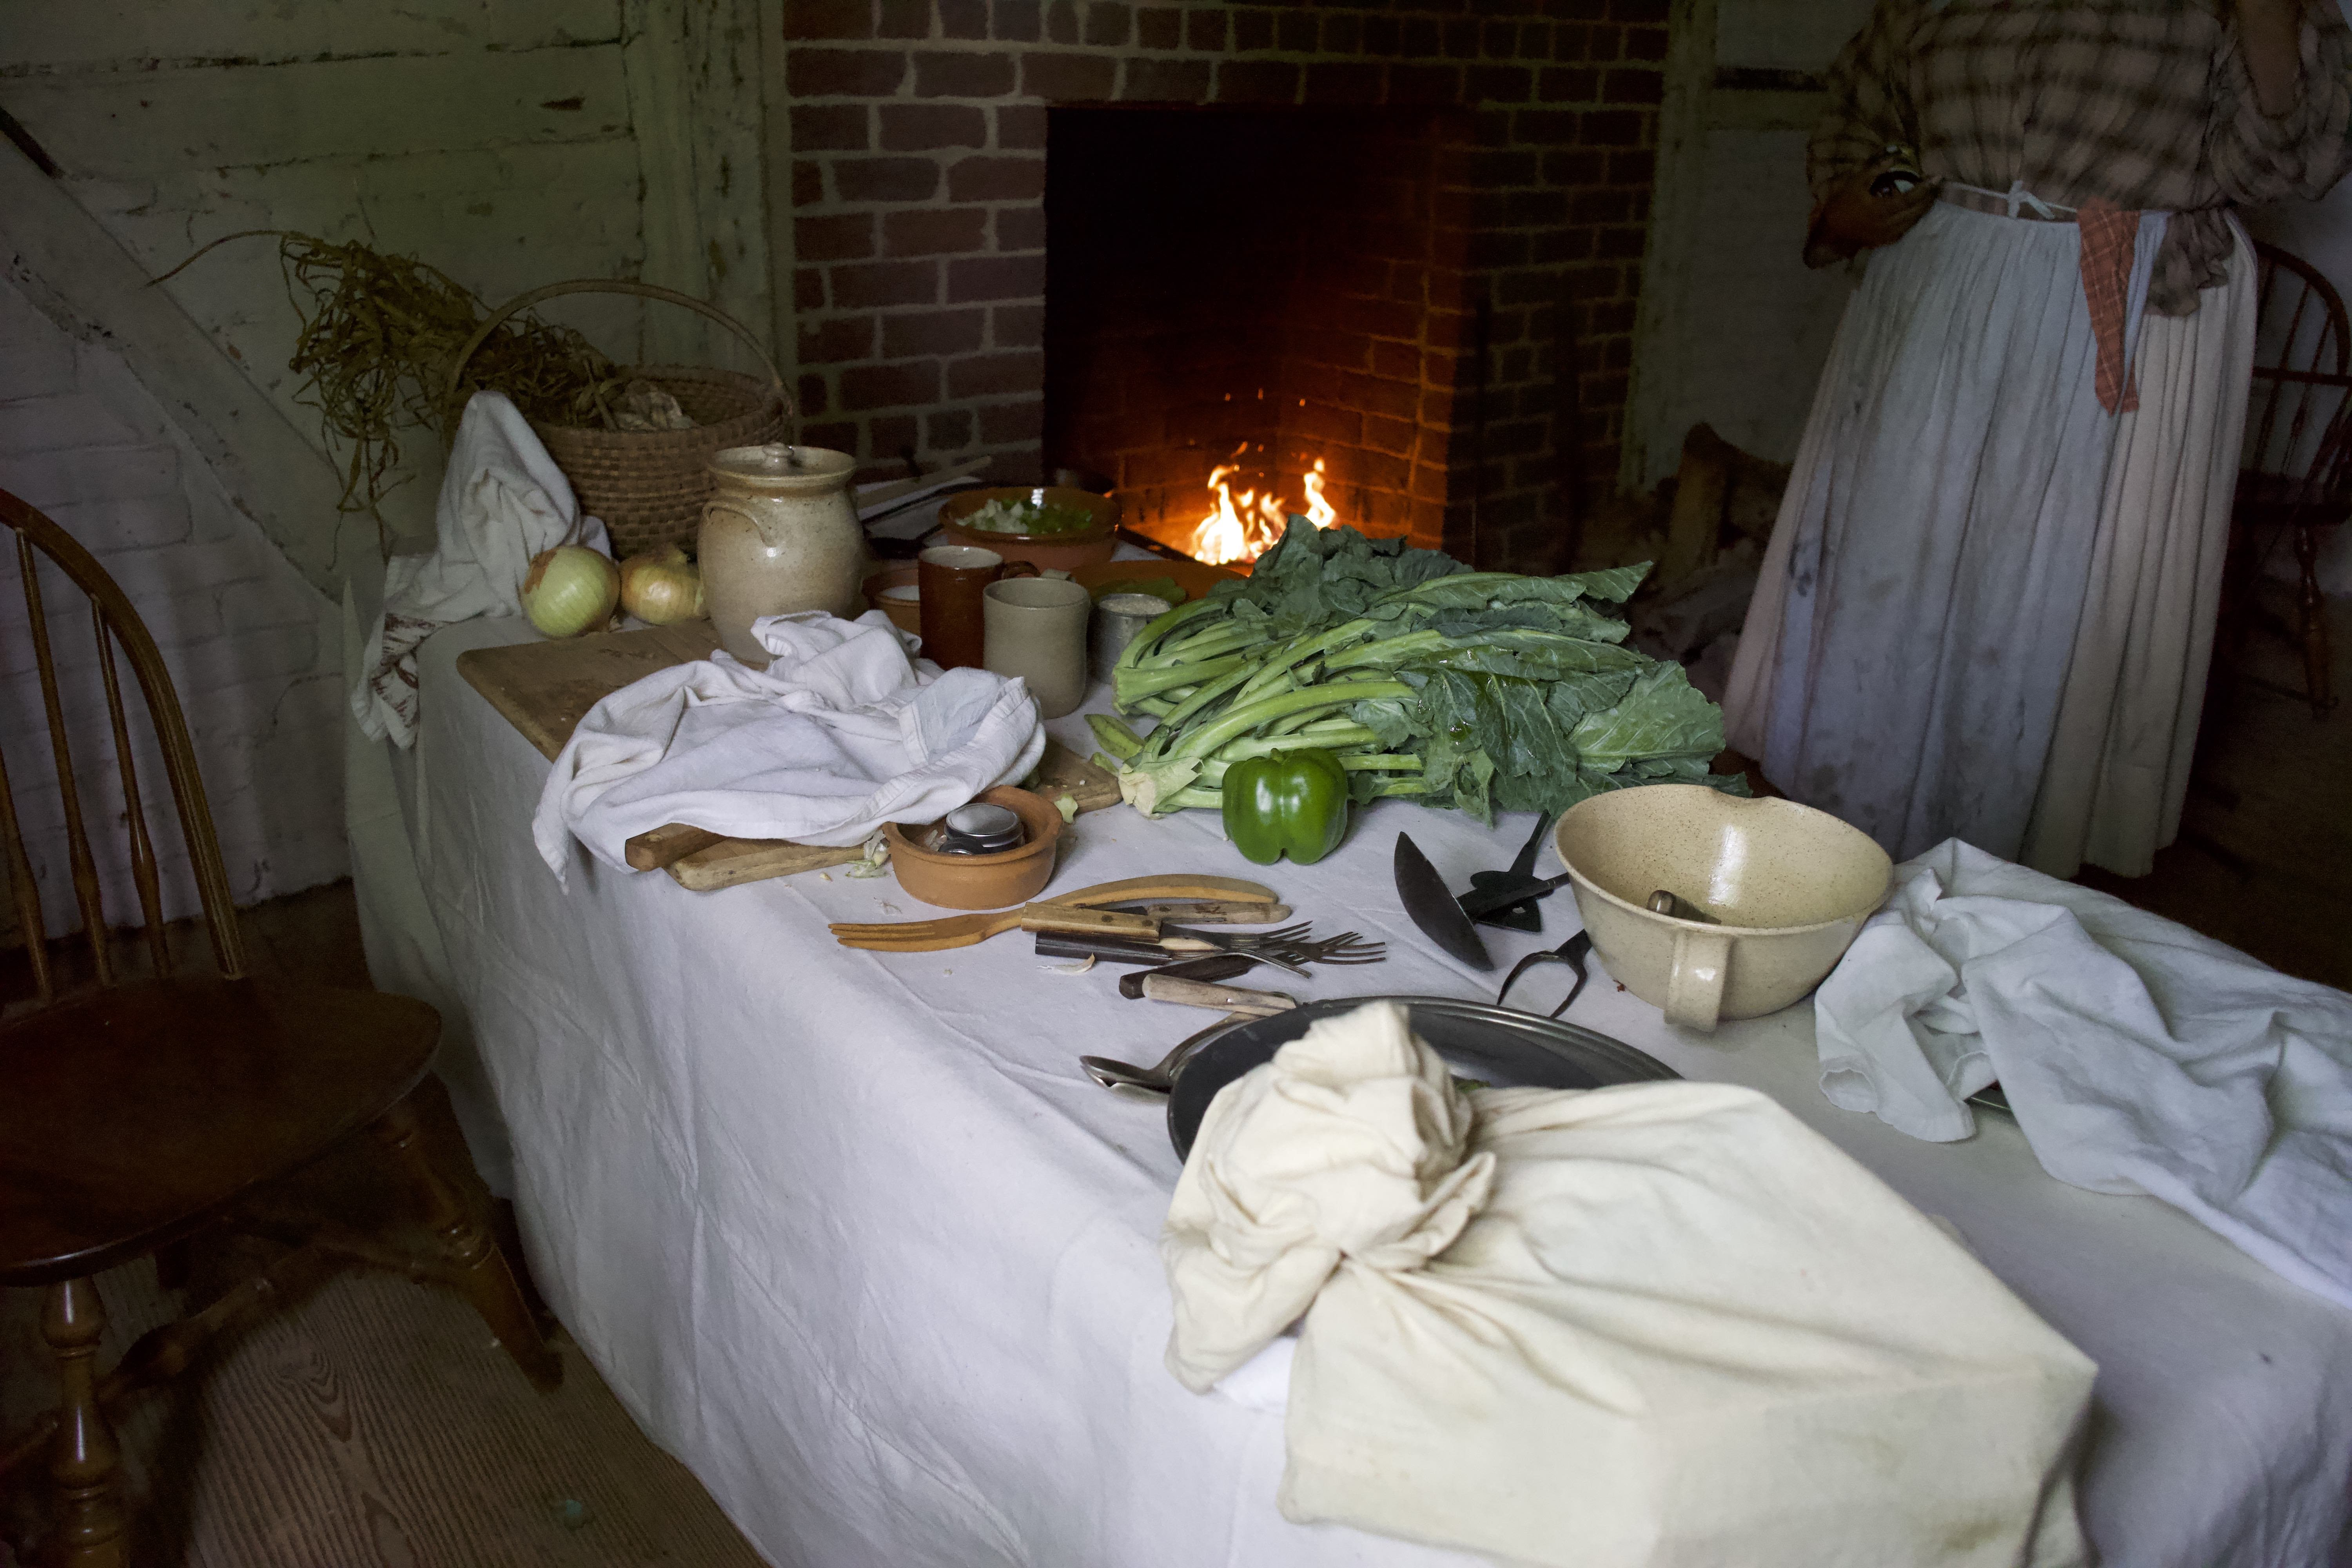 Juneteenth Commemoration: Hearth Cooking Demonstration